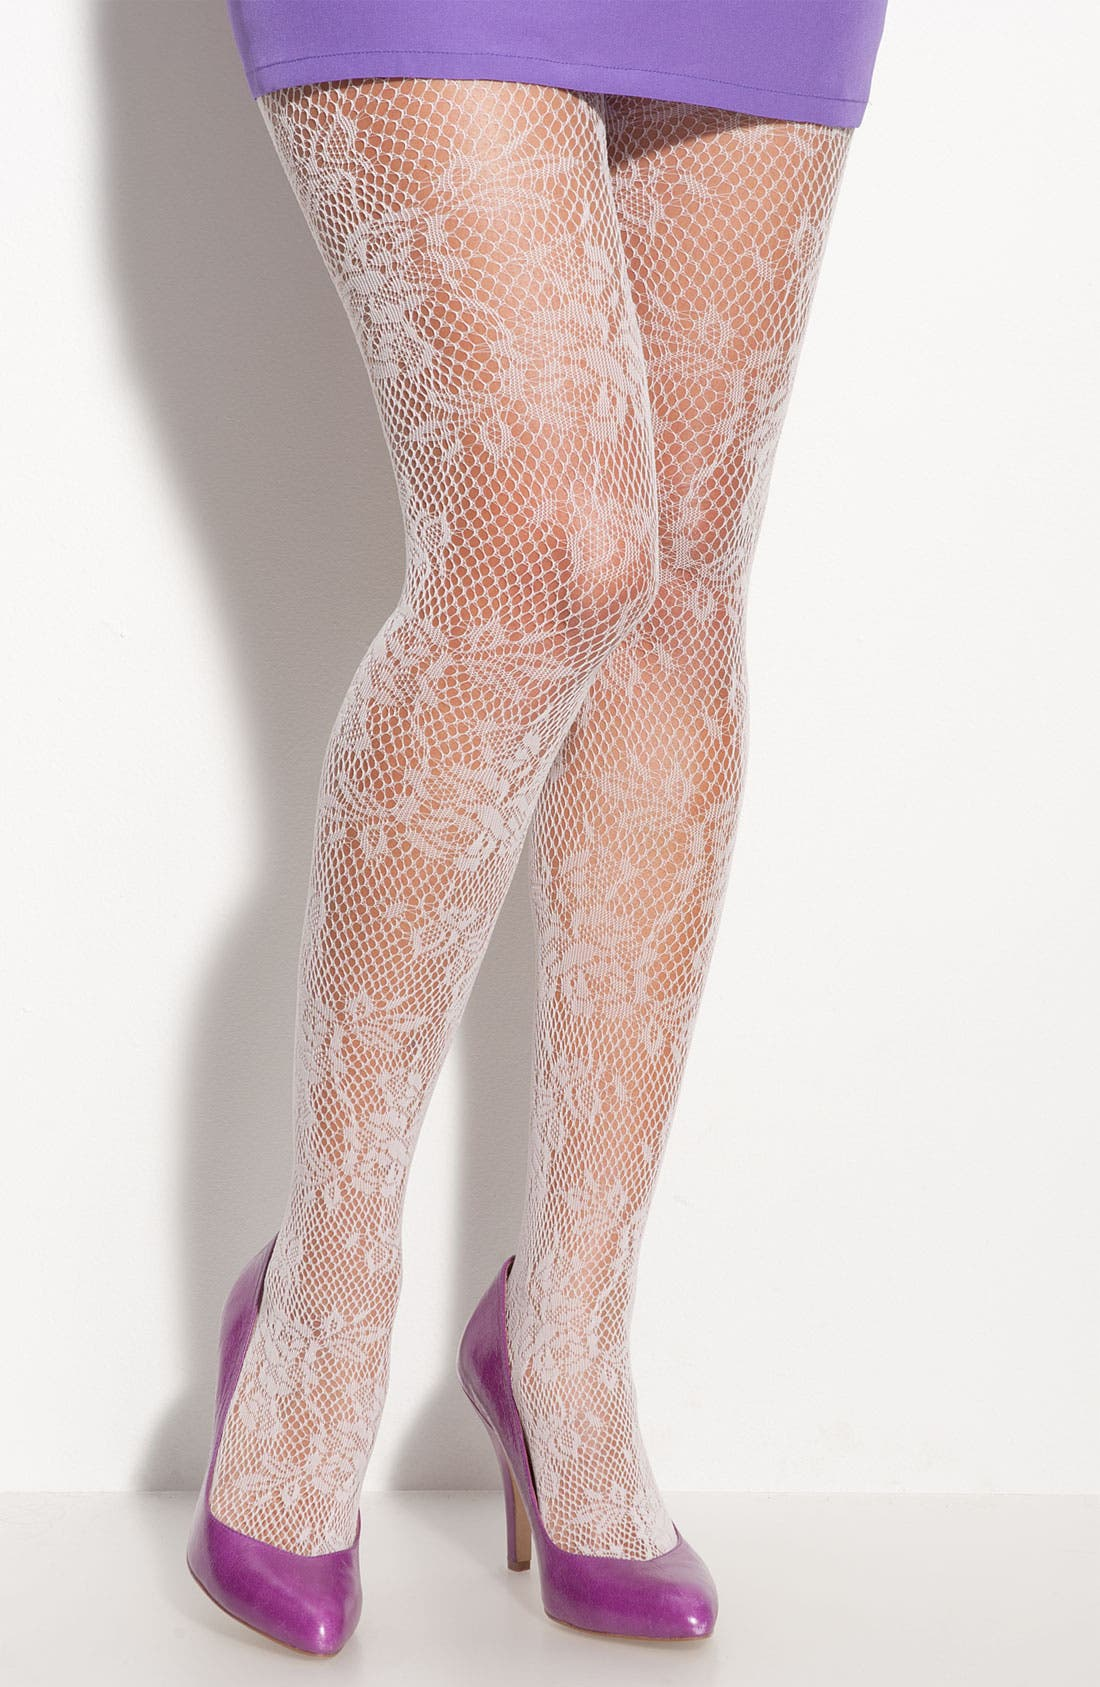 Main Image - Hue 'Rose Floral' Fishnet Stockings (2 for $22)